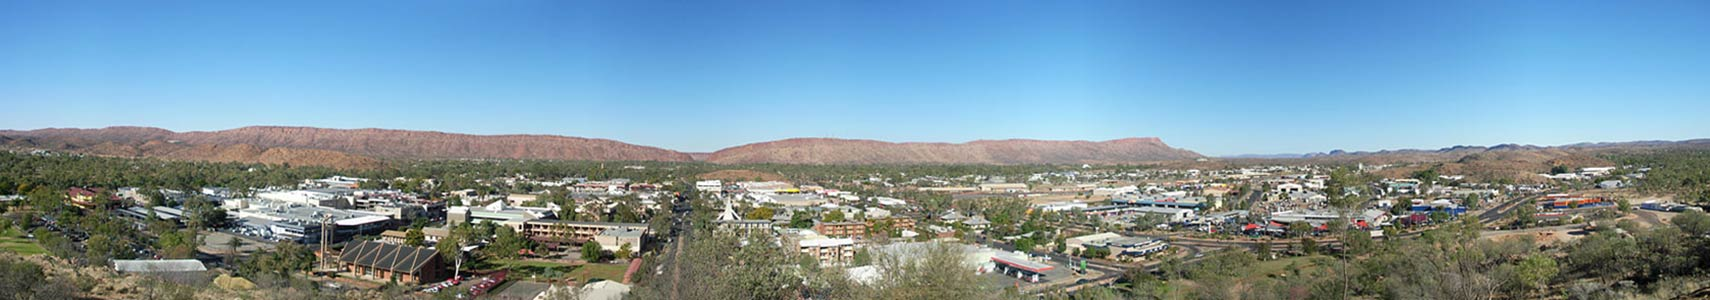 Panorama of Alice Springs, Northern Territory (NT), Australia